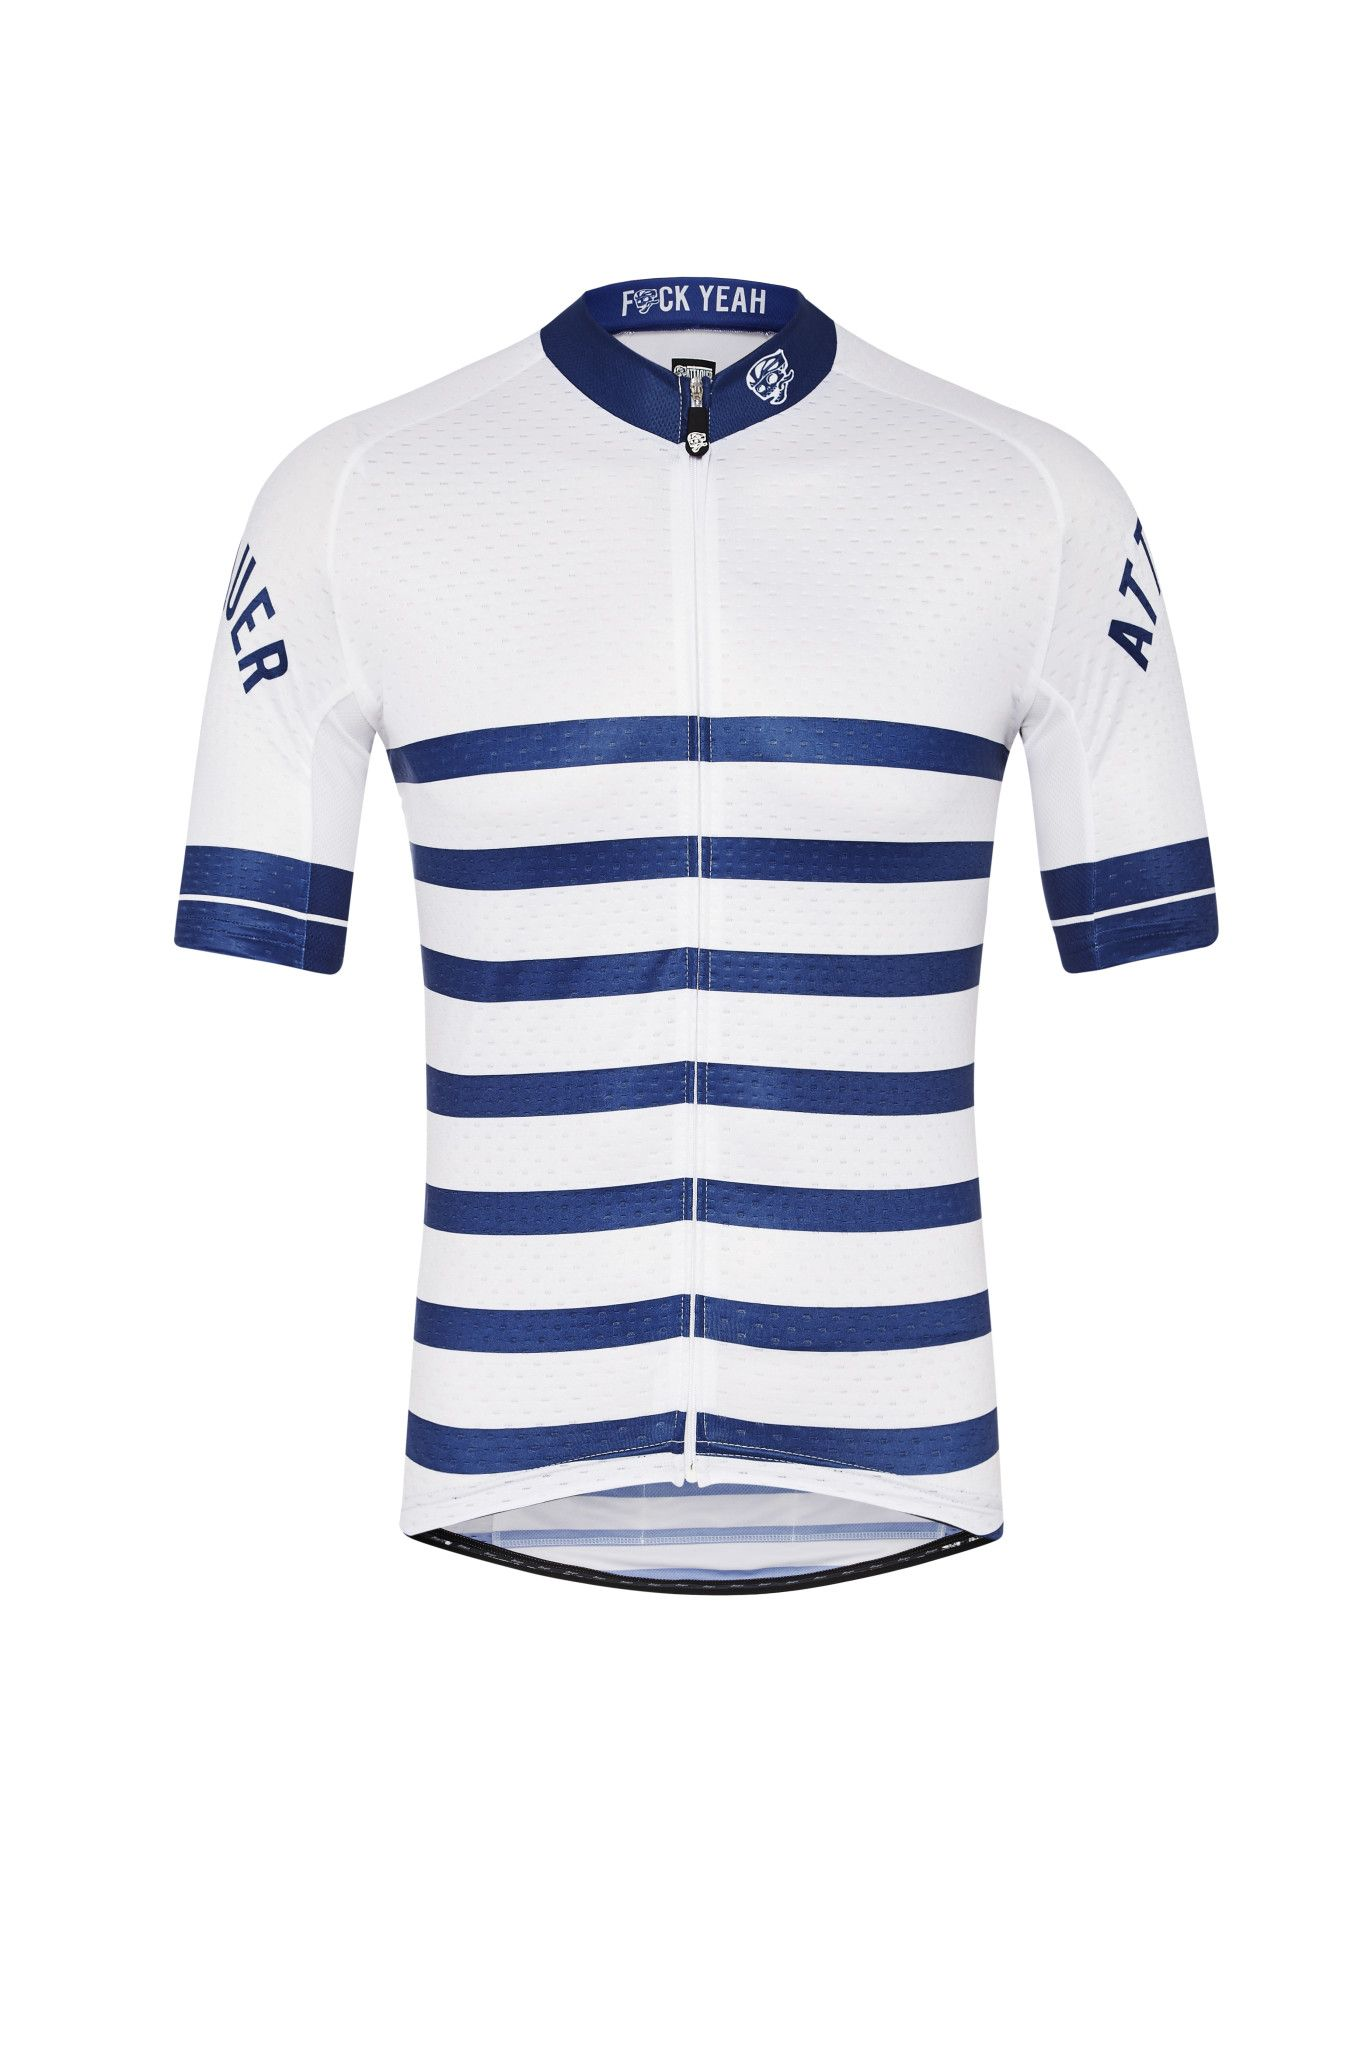 ef0f84e1f The Core jersey is based around our tried and tested jersey that we ve been